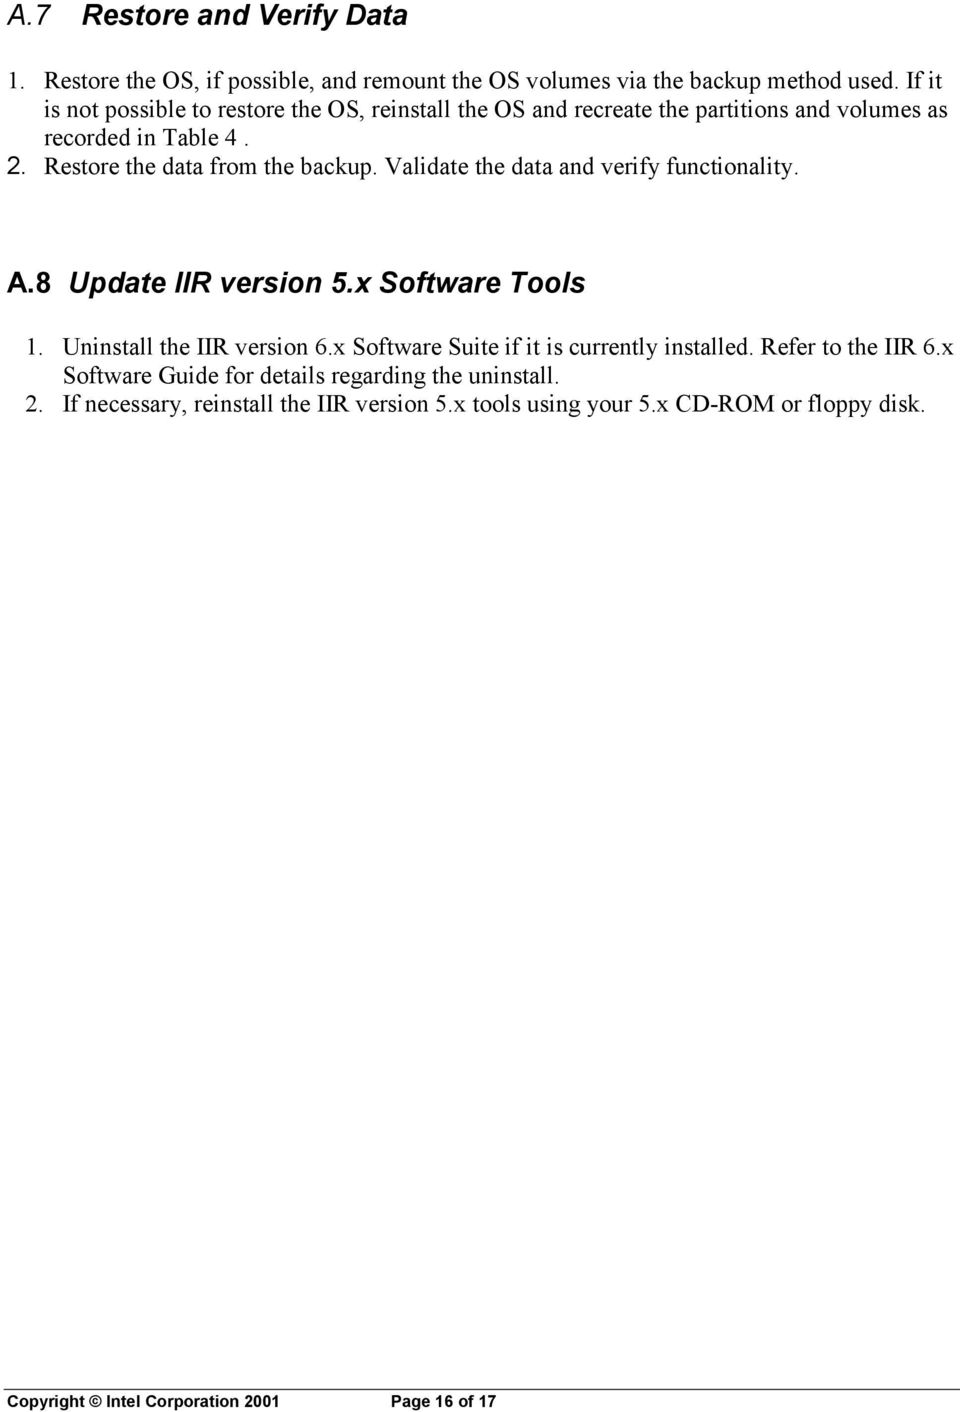 Validate the data and verify functionality. A.8 Update IIR version 5.x Software Tools 1. Uninstall the IIR version 6.